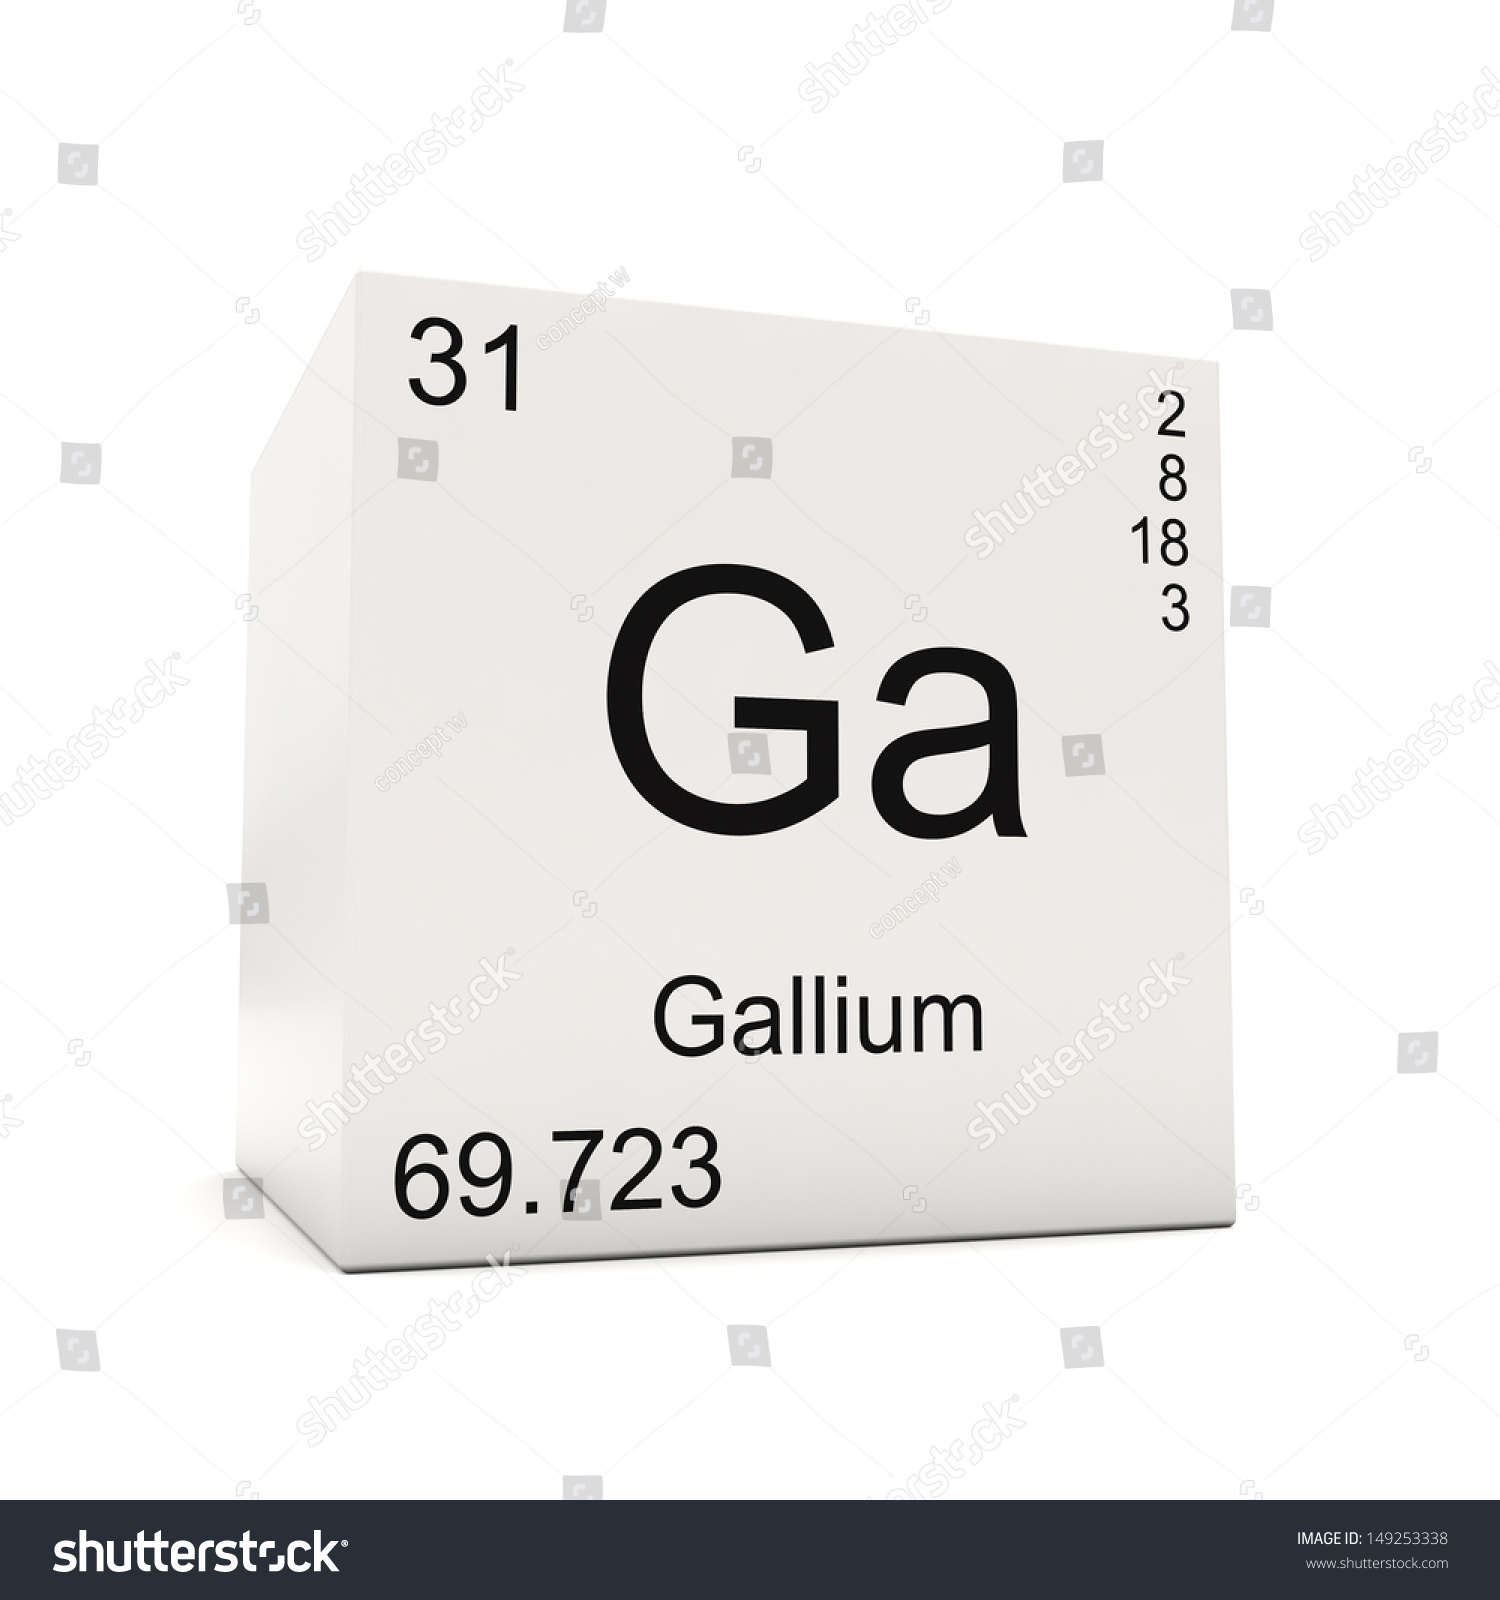 Cube gallium element periodic table isolated stock illustration cube of gallium element of the periodic table isolated on white background gamestrikefo Image collections